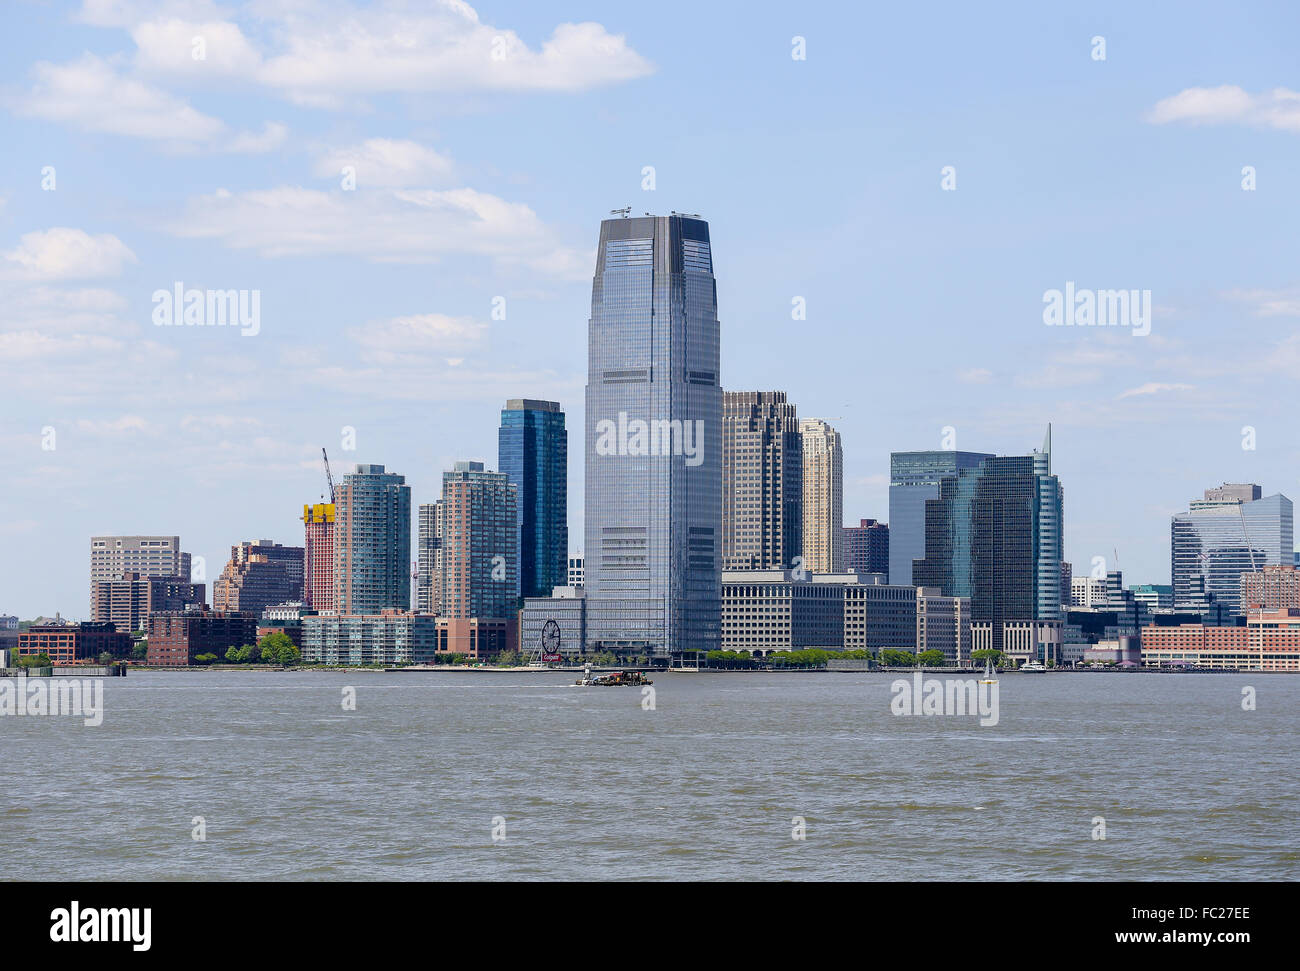 New Jersey Waterfront - Stock Image